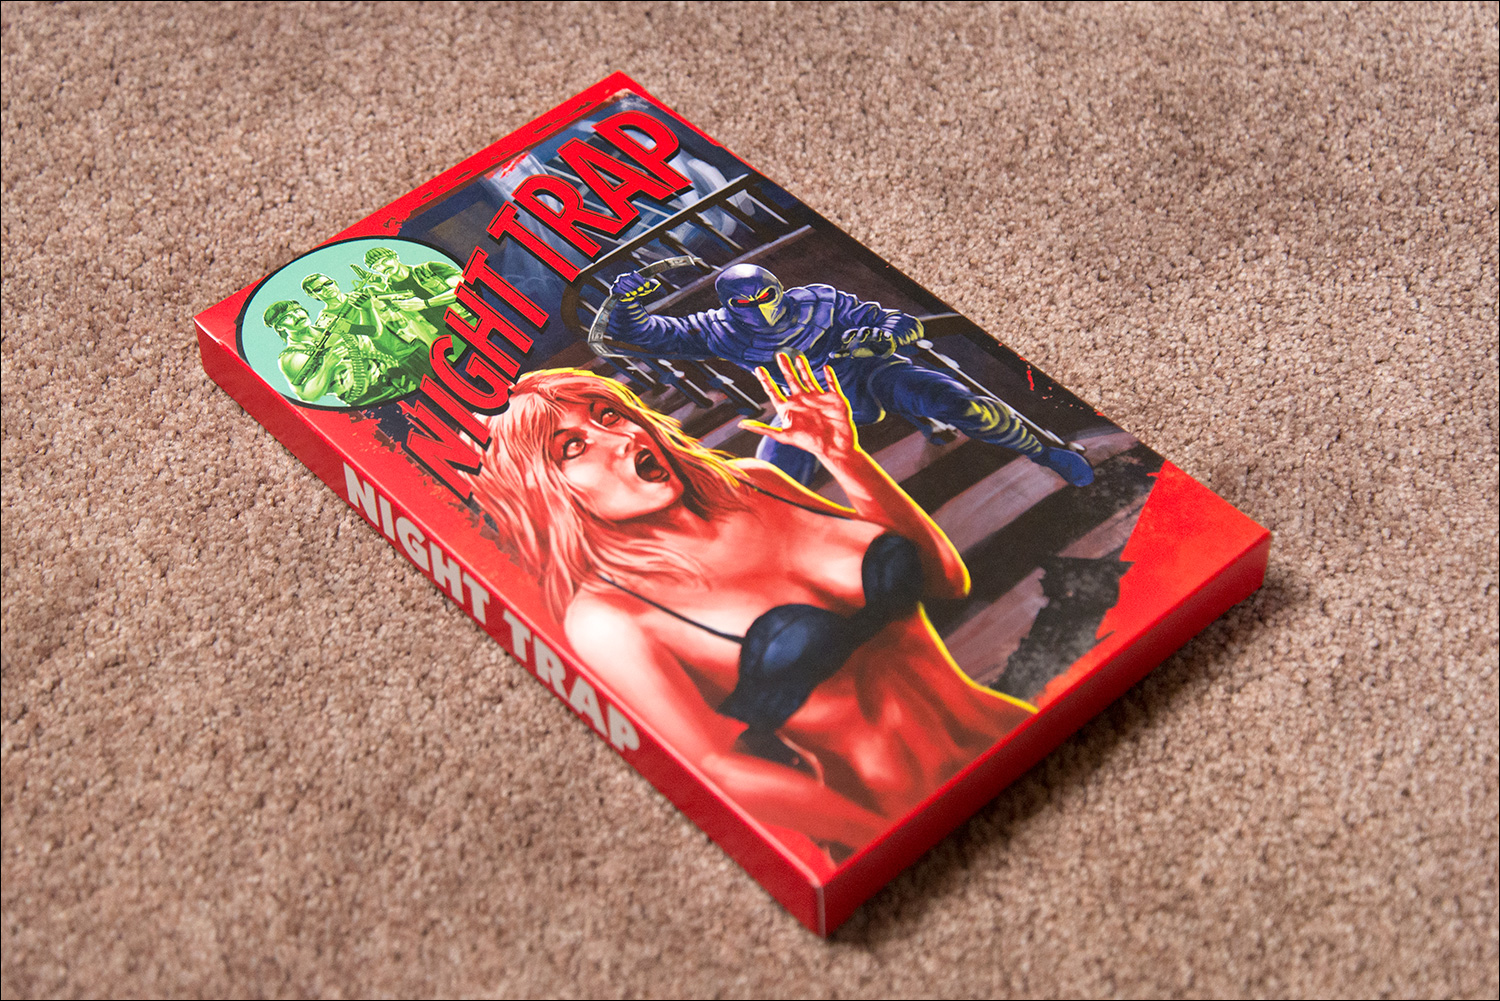 Night Trap 25th Anniversary Collector's Edition – Video Game